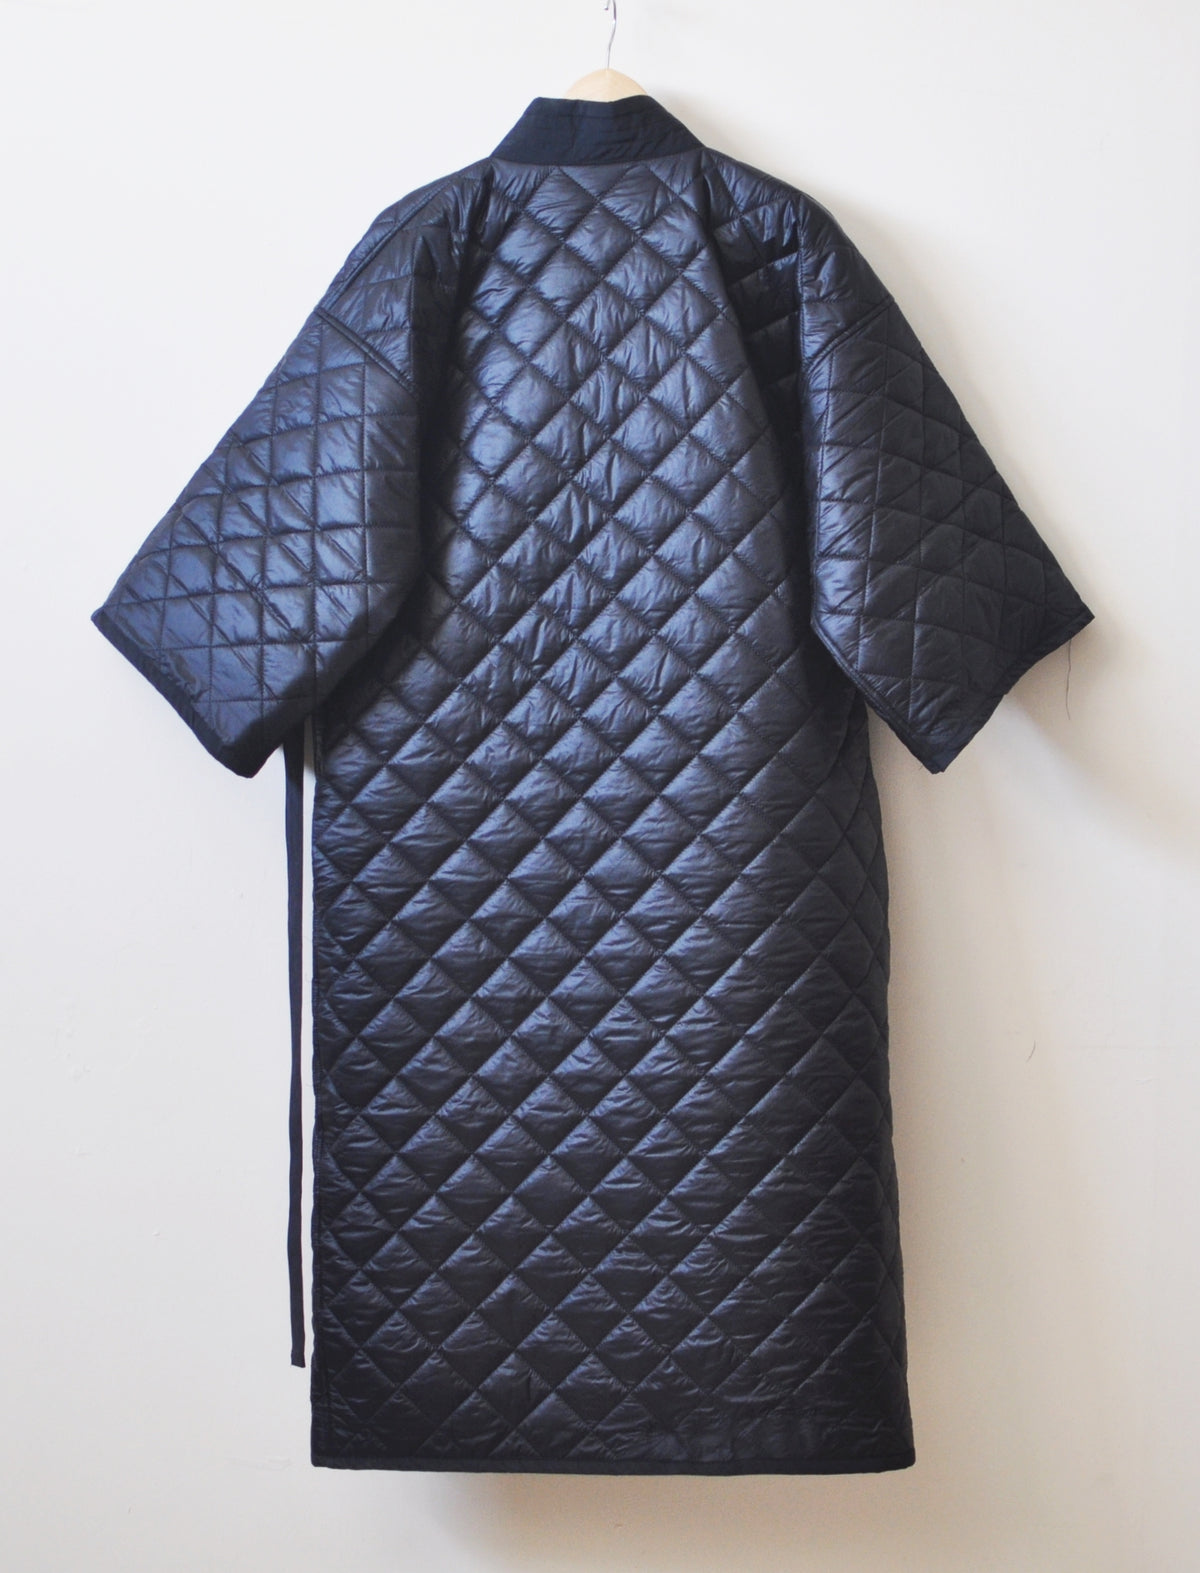 Winter V-Collar Three-quarter Sleeve Kimono /Bandage Padded Coat Quilted Overlong Coat / Loose Over the Knee Long Jacket / Kaftan Maxi Dress